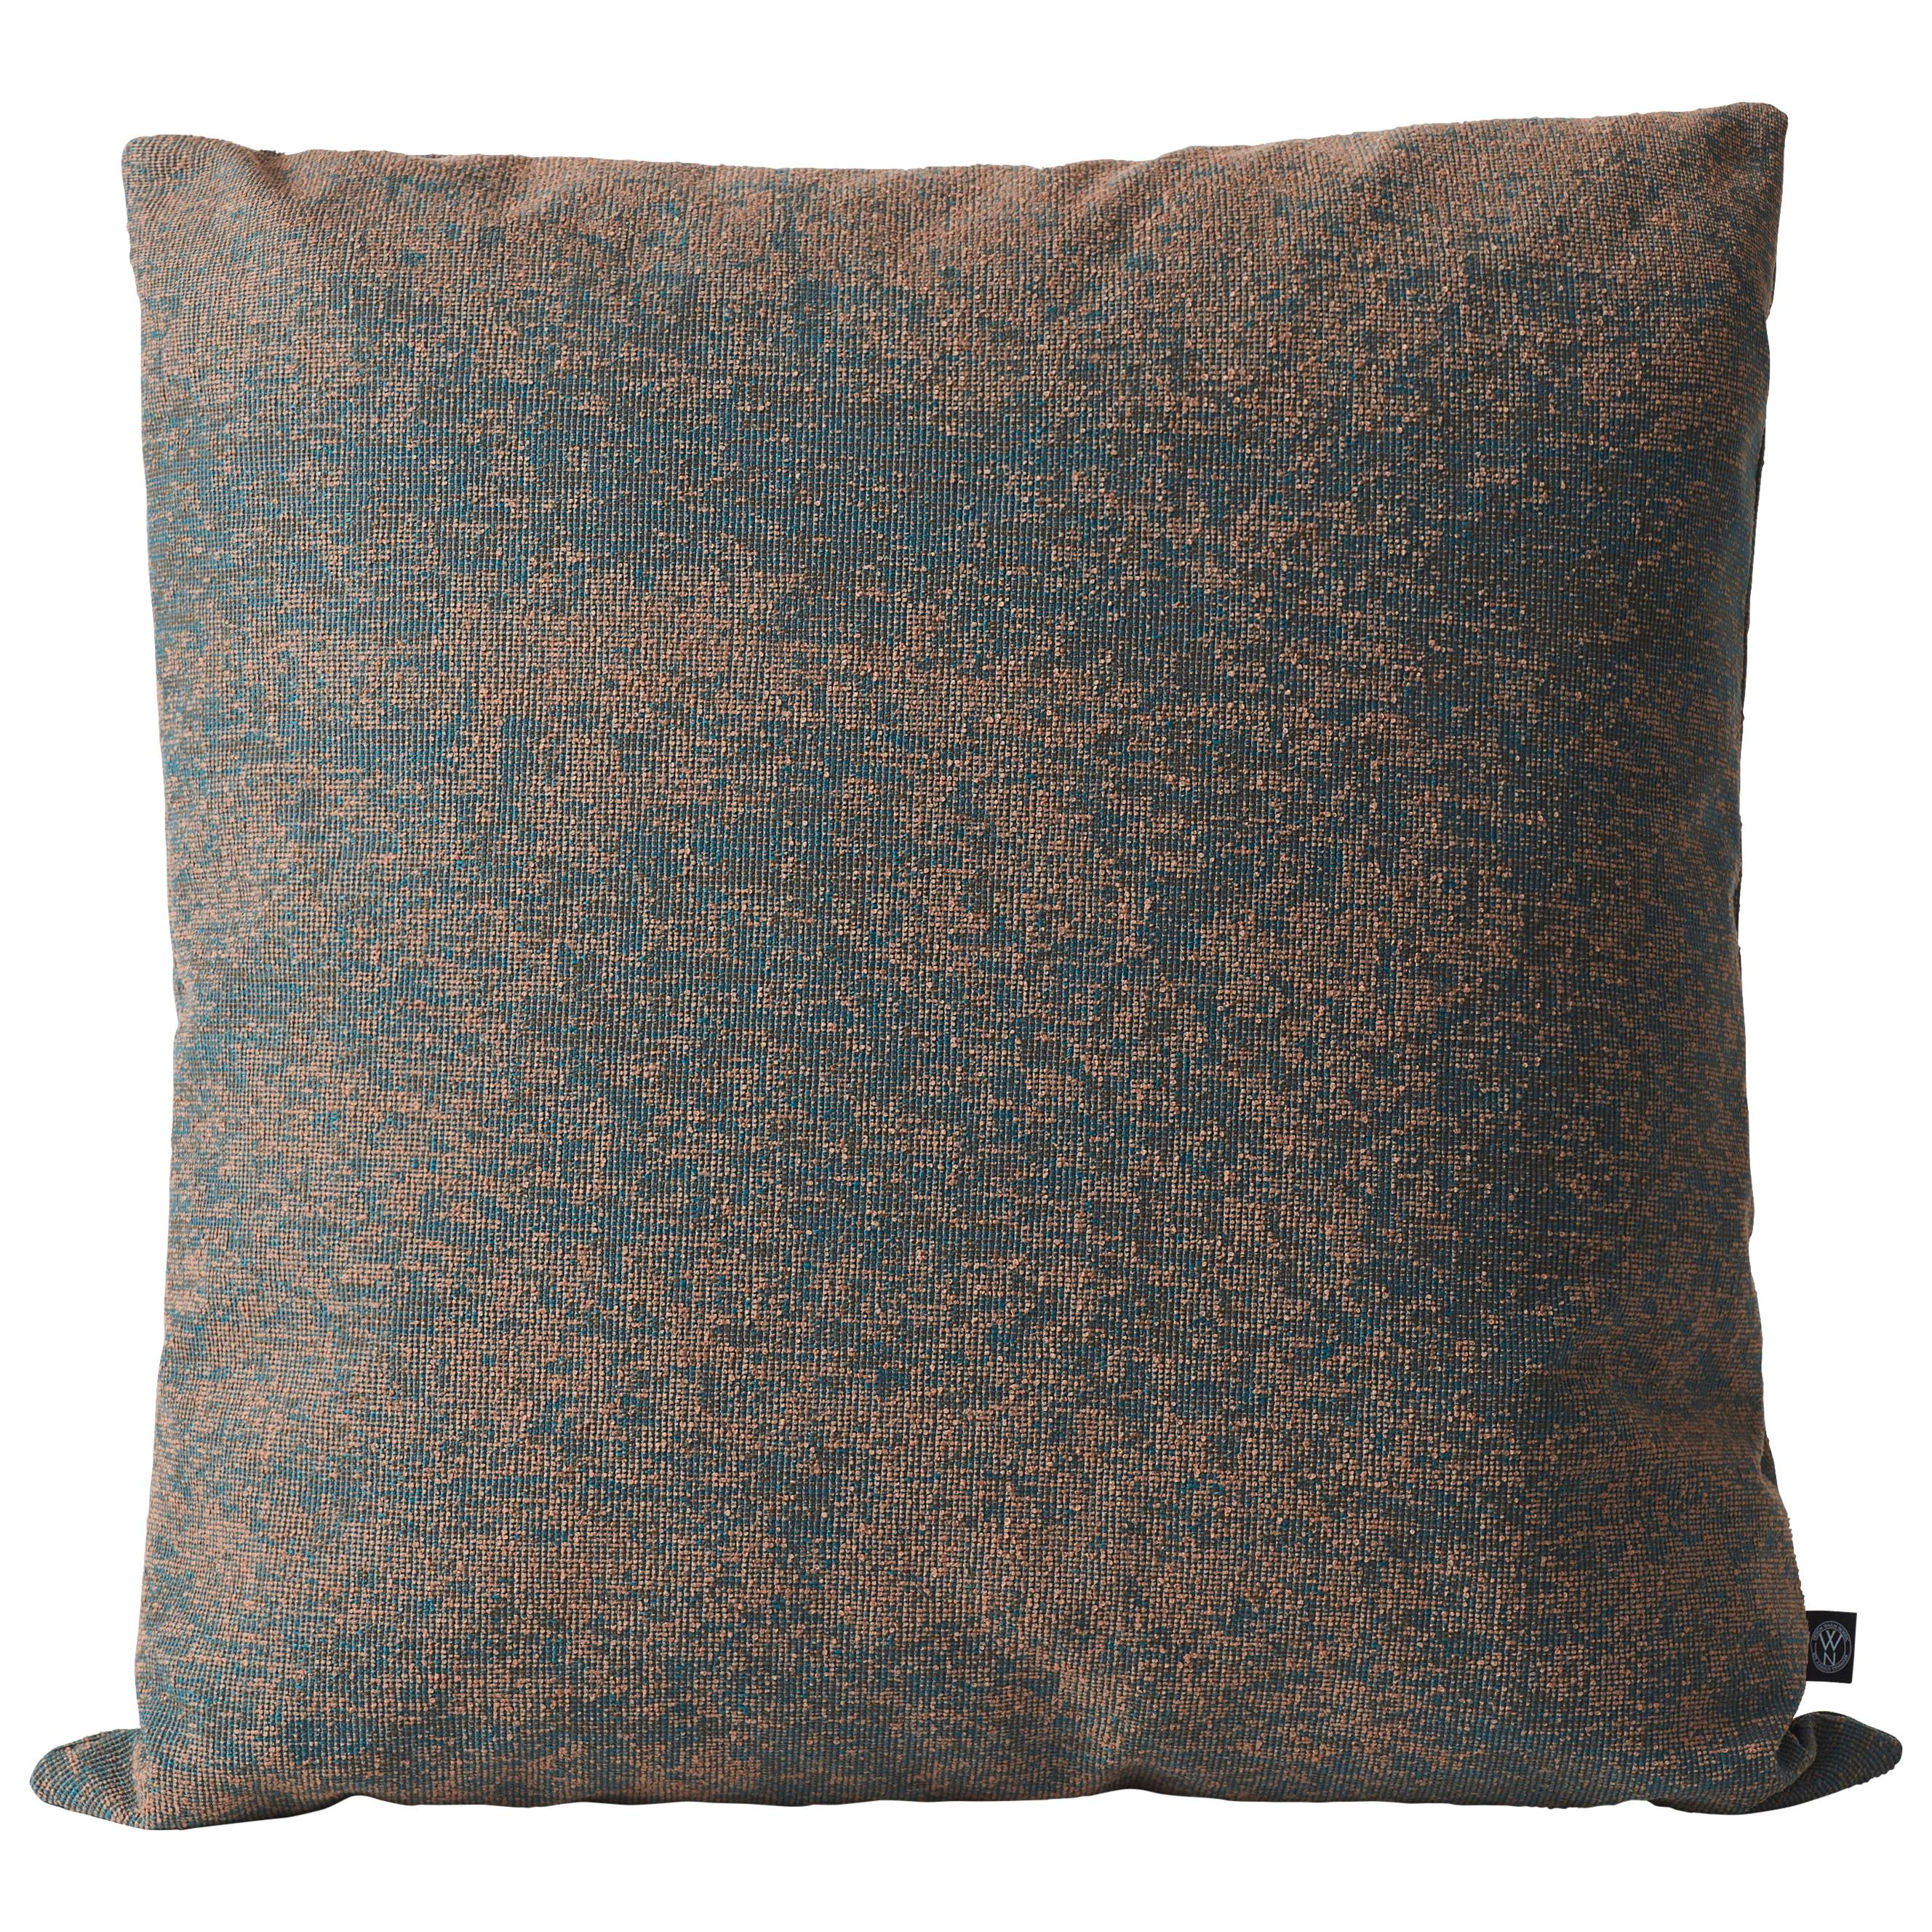 Large Memory Square Cushion or Throw Pillow by Warm Nordic